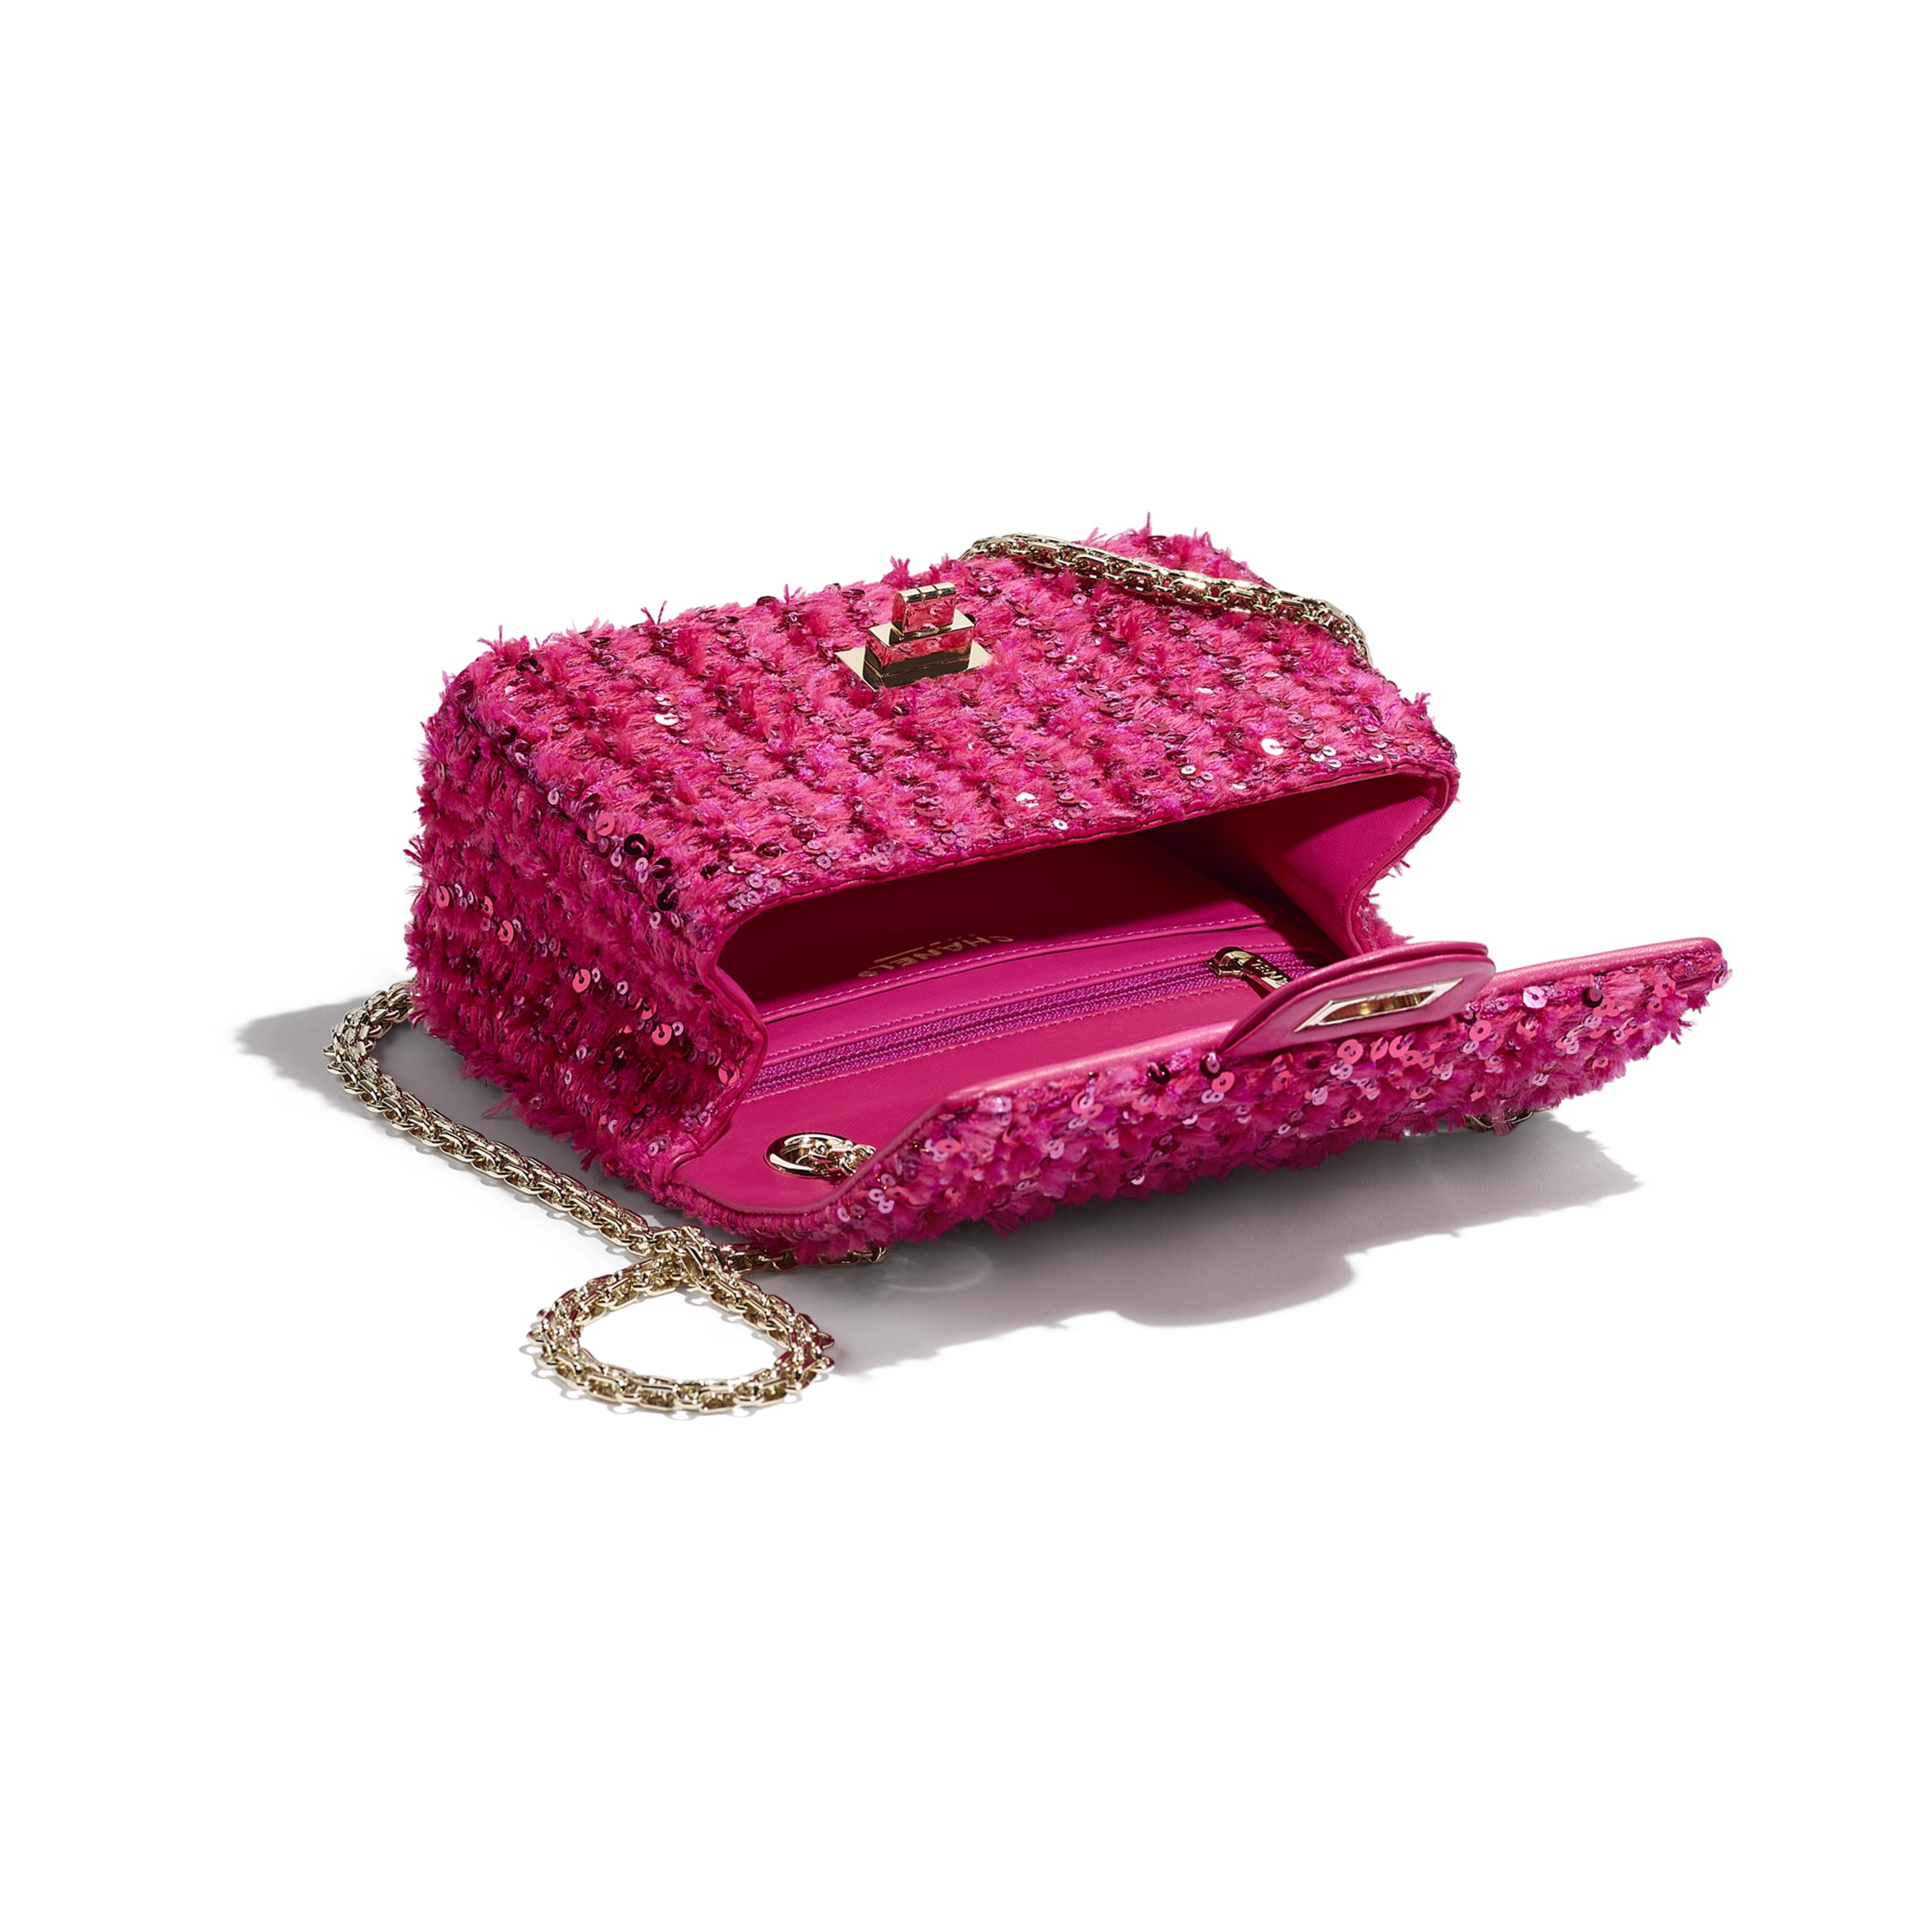 Mini 2.55 Handbag - Pink - Sequins & Gold-Tone Metal - CHANEL - Other view - see standard sized version